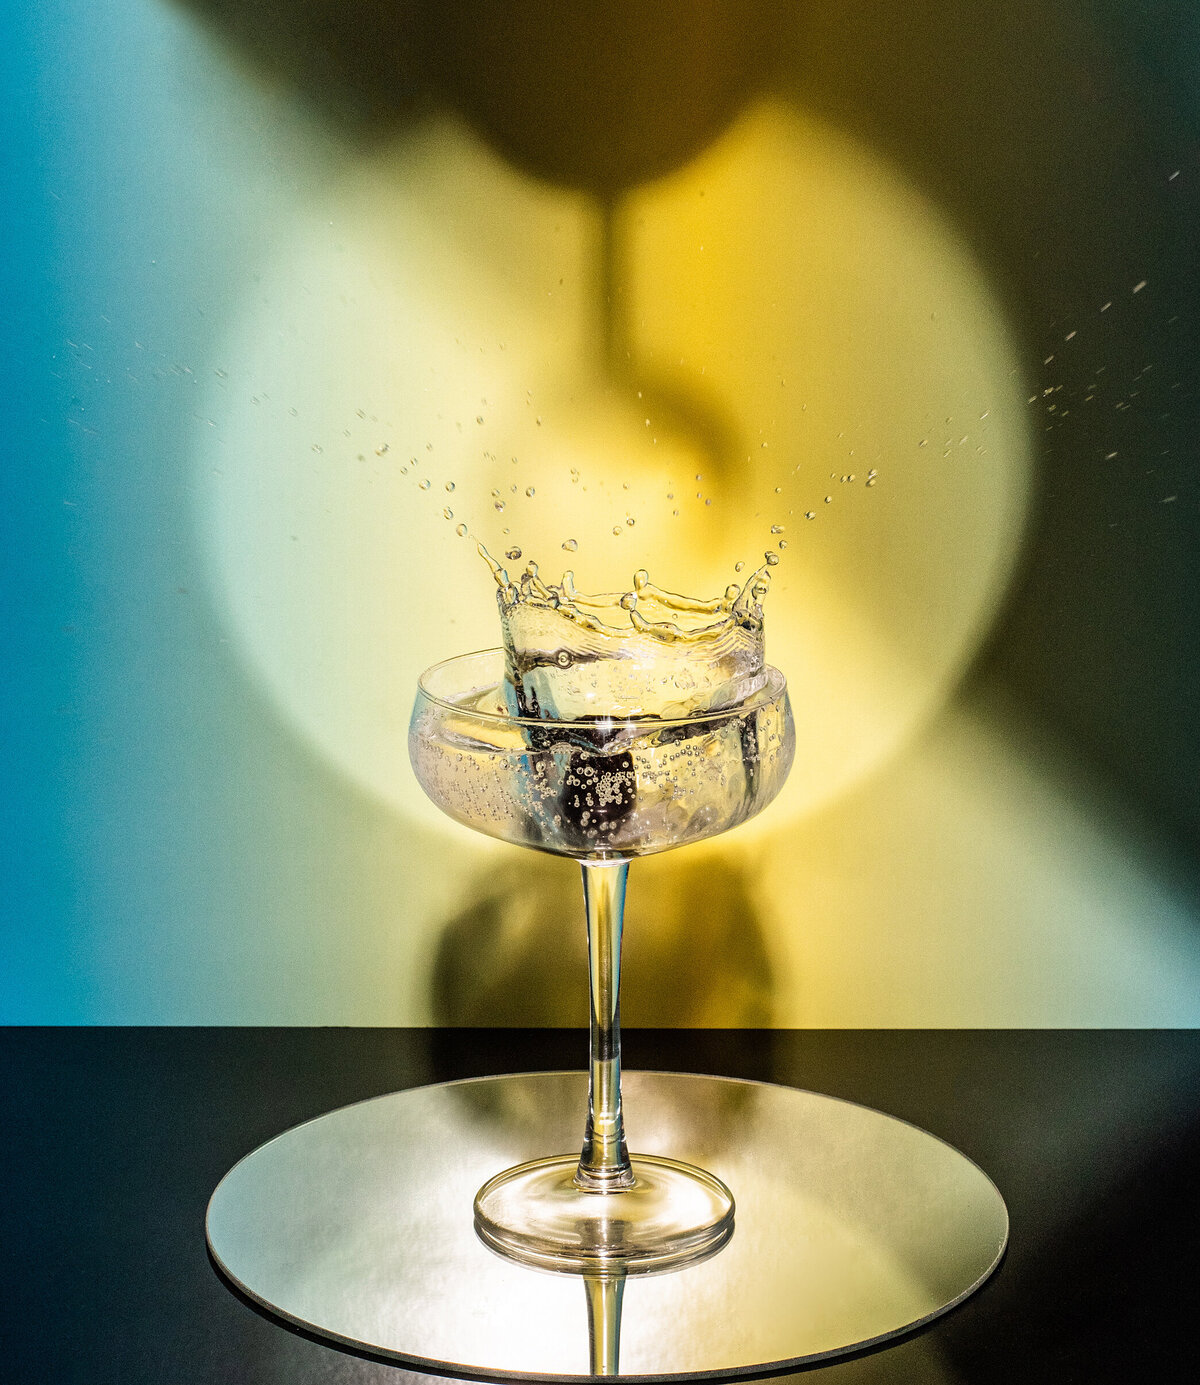 a splash into a cocktail glass